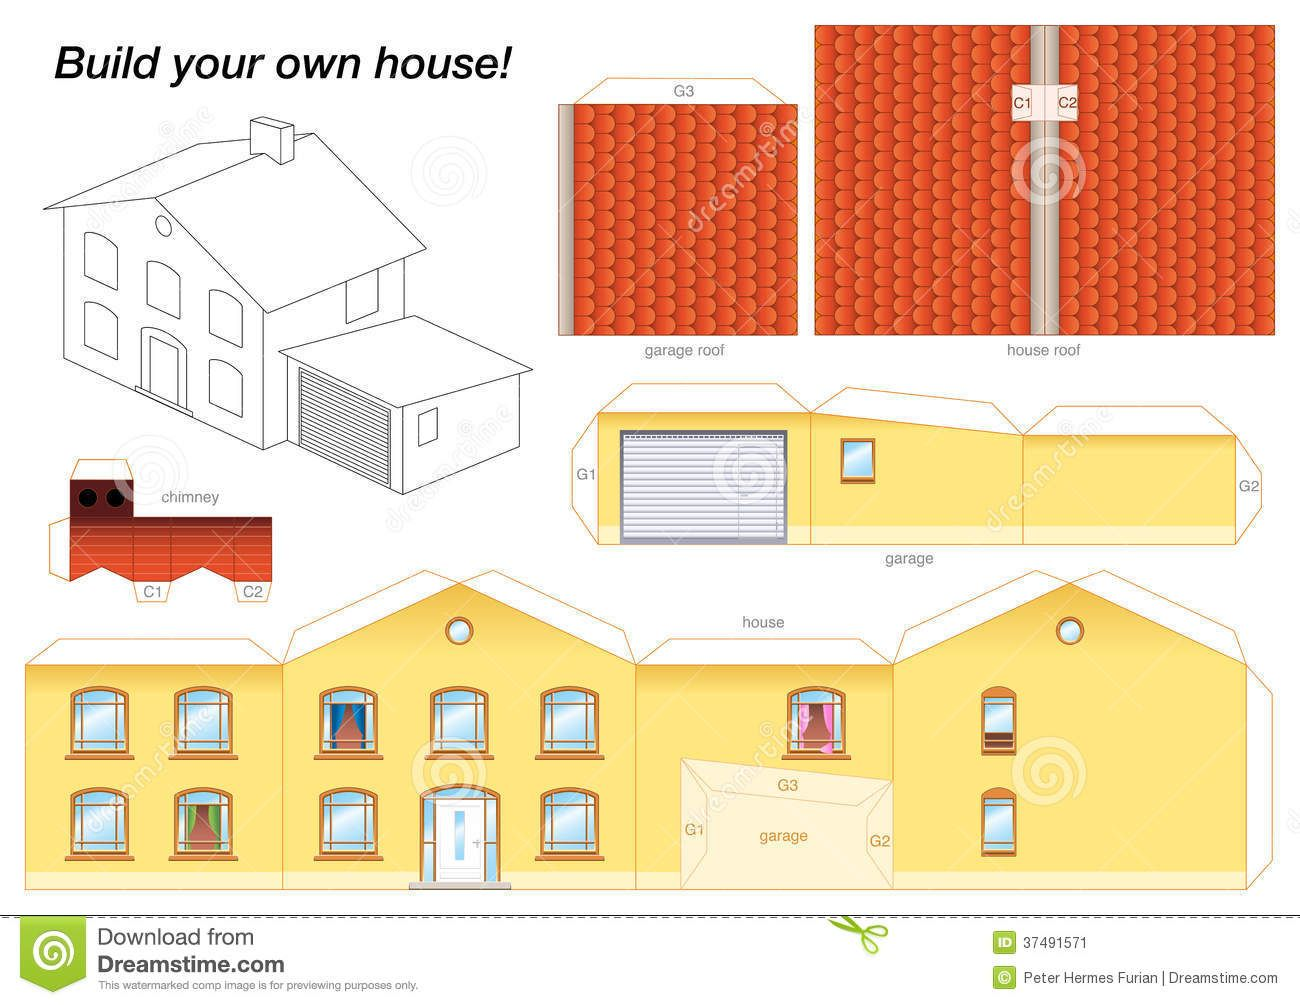 paper model house yellow download from over 54 million high quality stock photos images - Build Your Own Model House